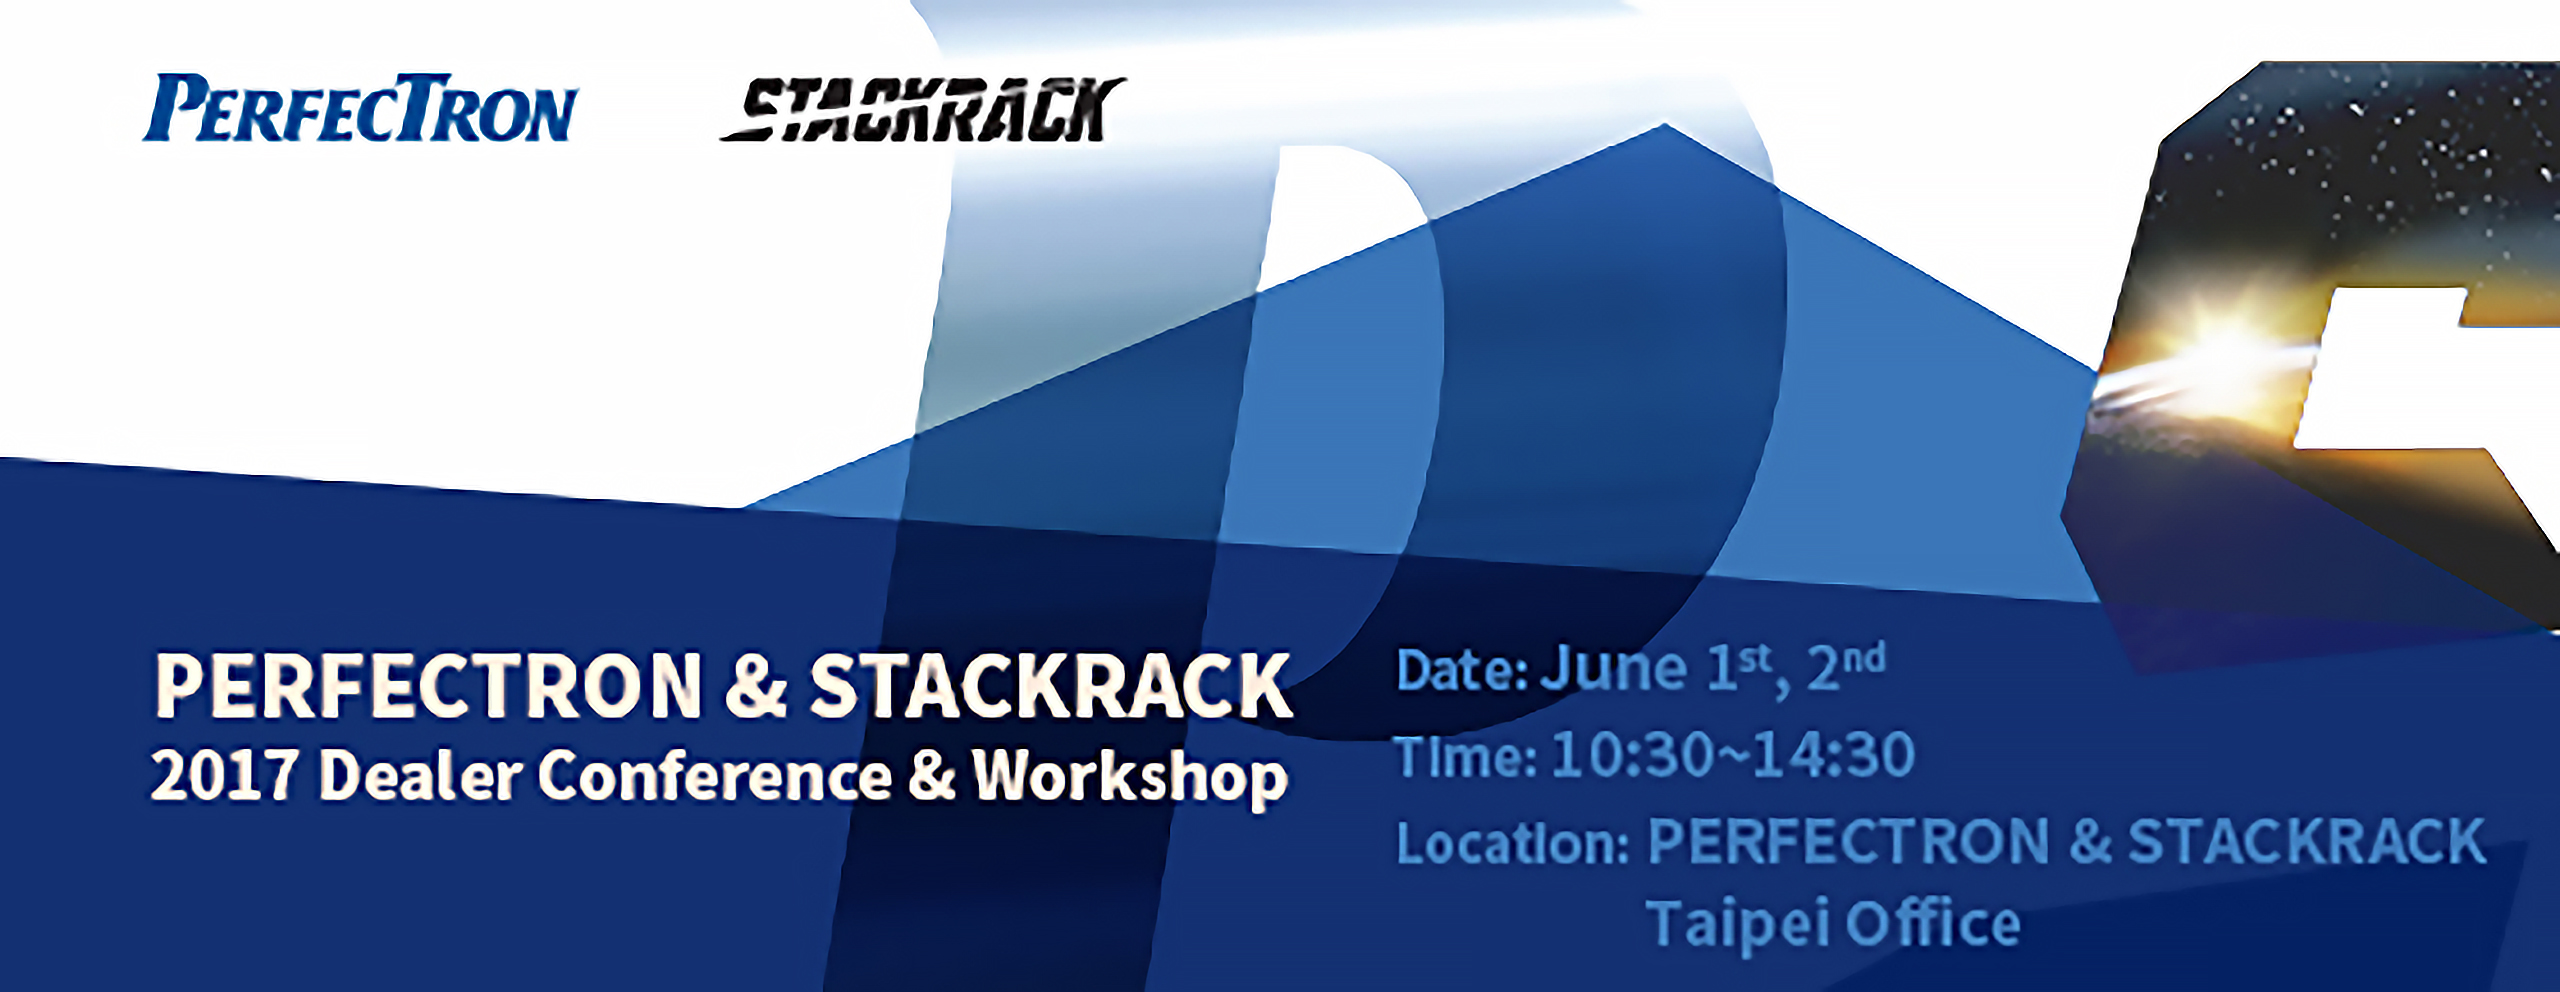 PERFECTRON & STACKRACK 2017 Dealer Conference & Workshop